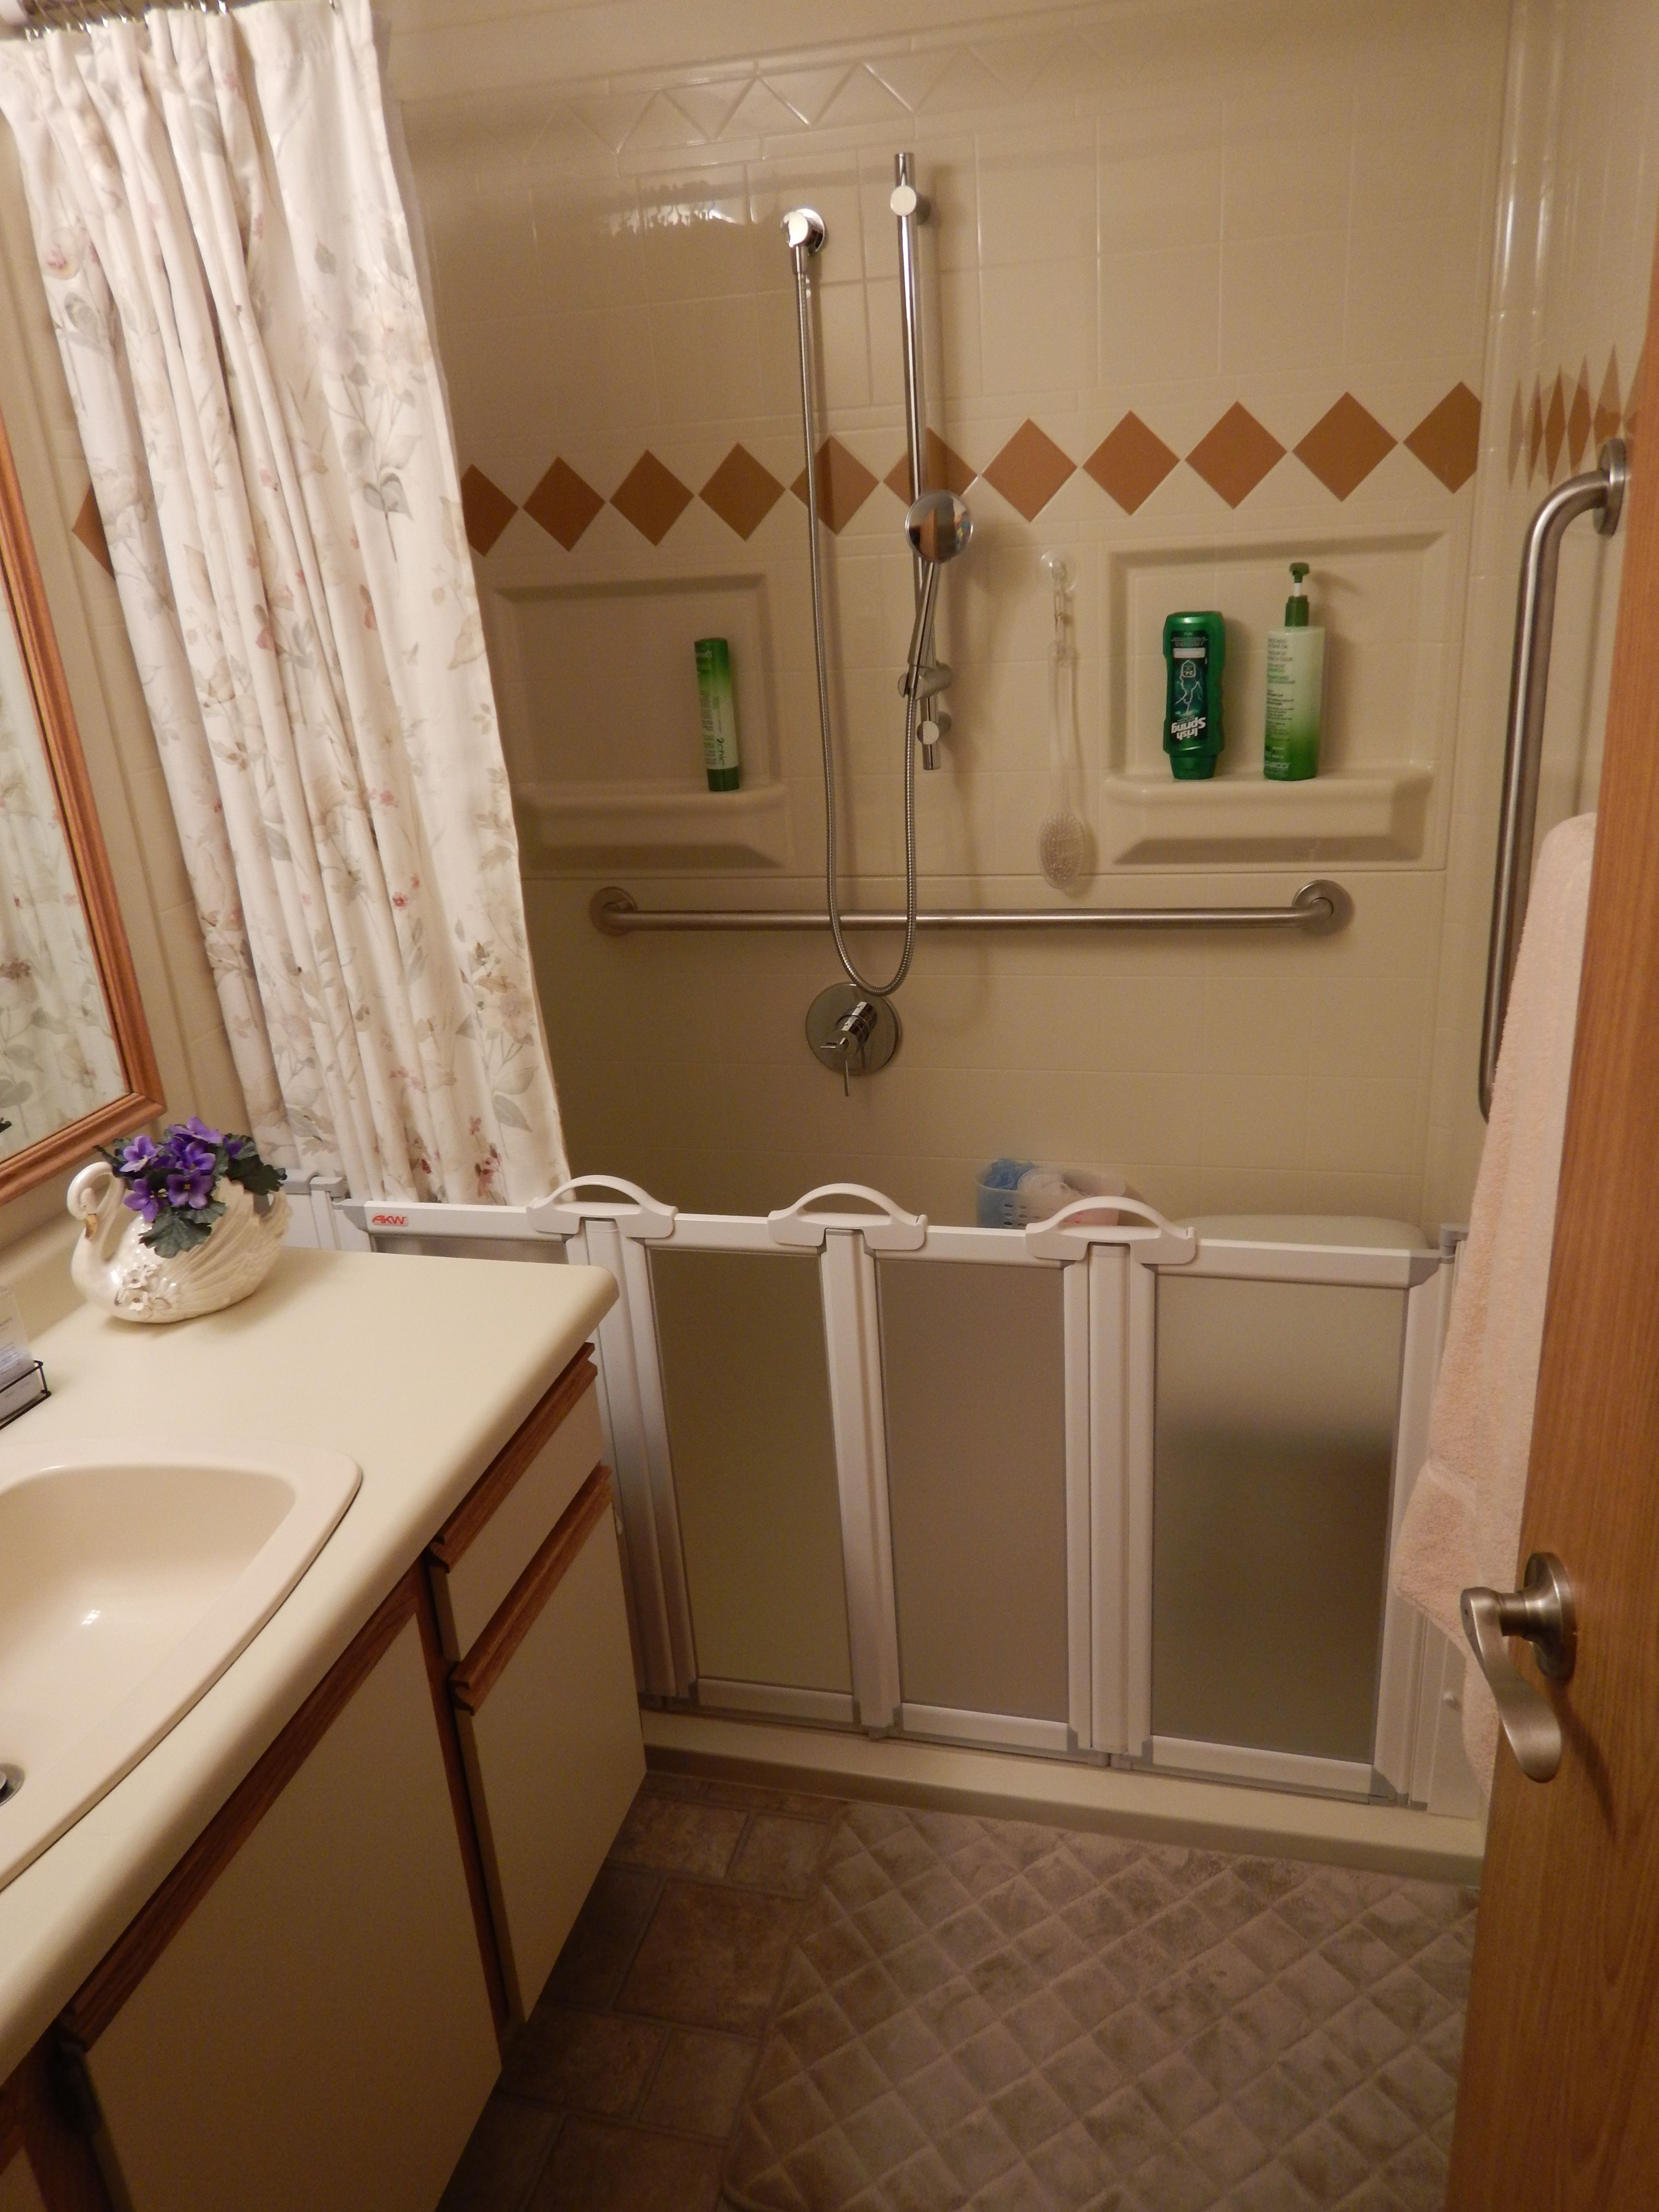 Low threshold shower with accordian folding shower doors that allow ...